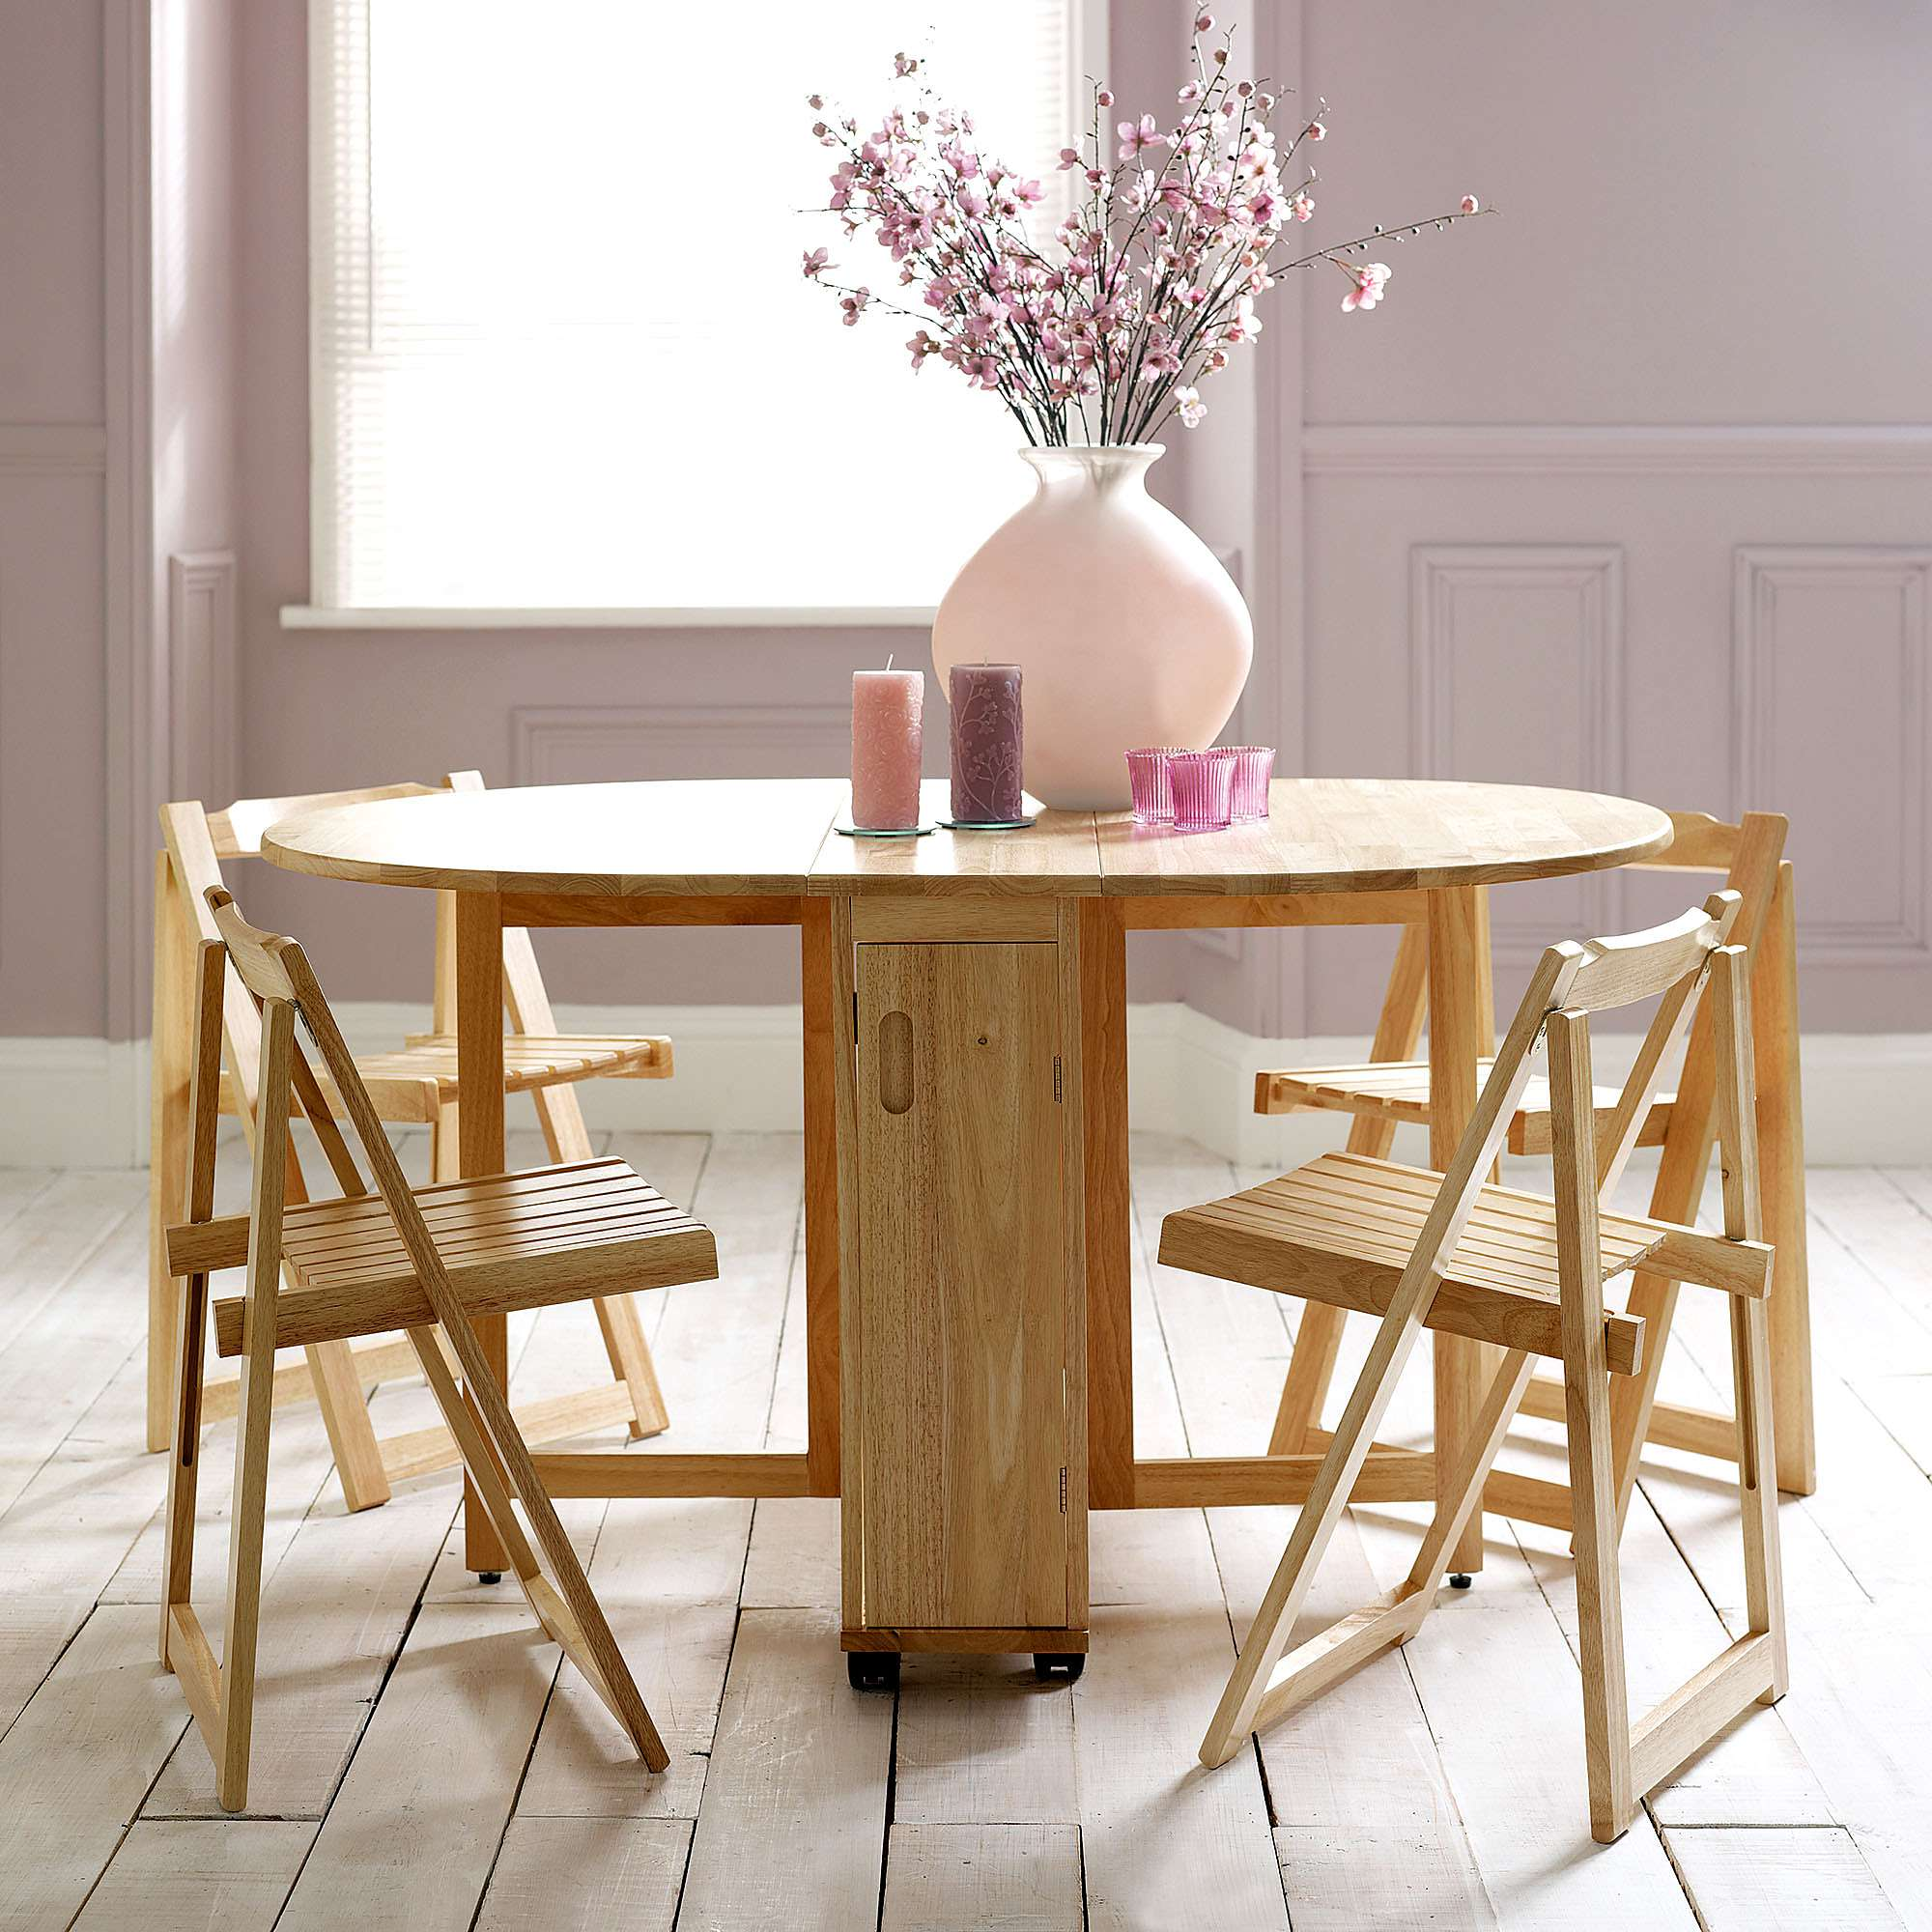 Folding dining table photos